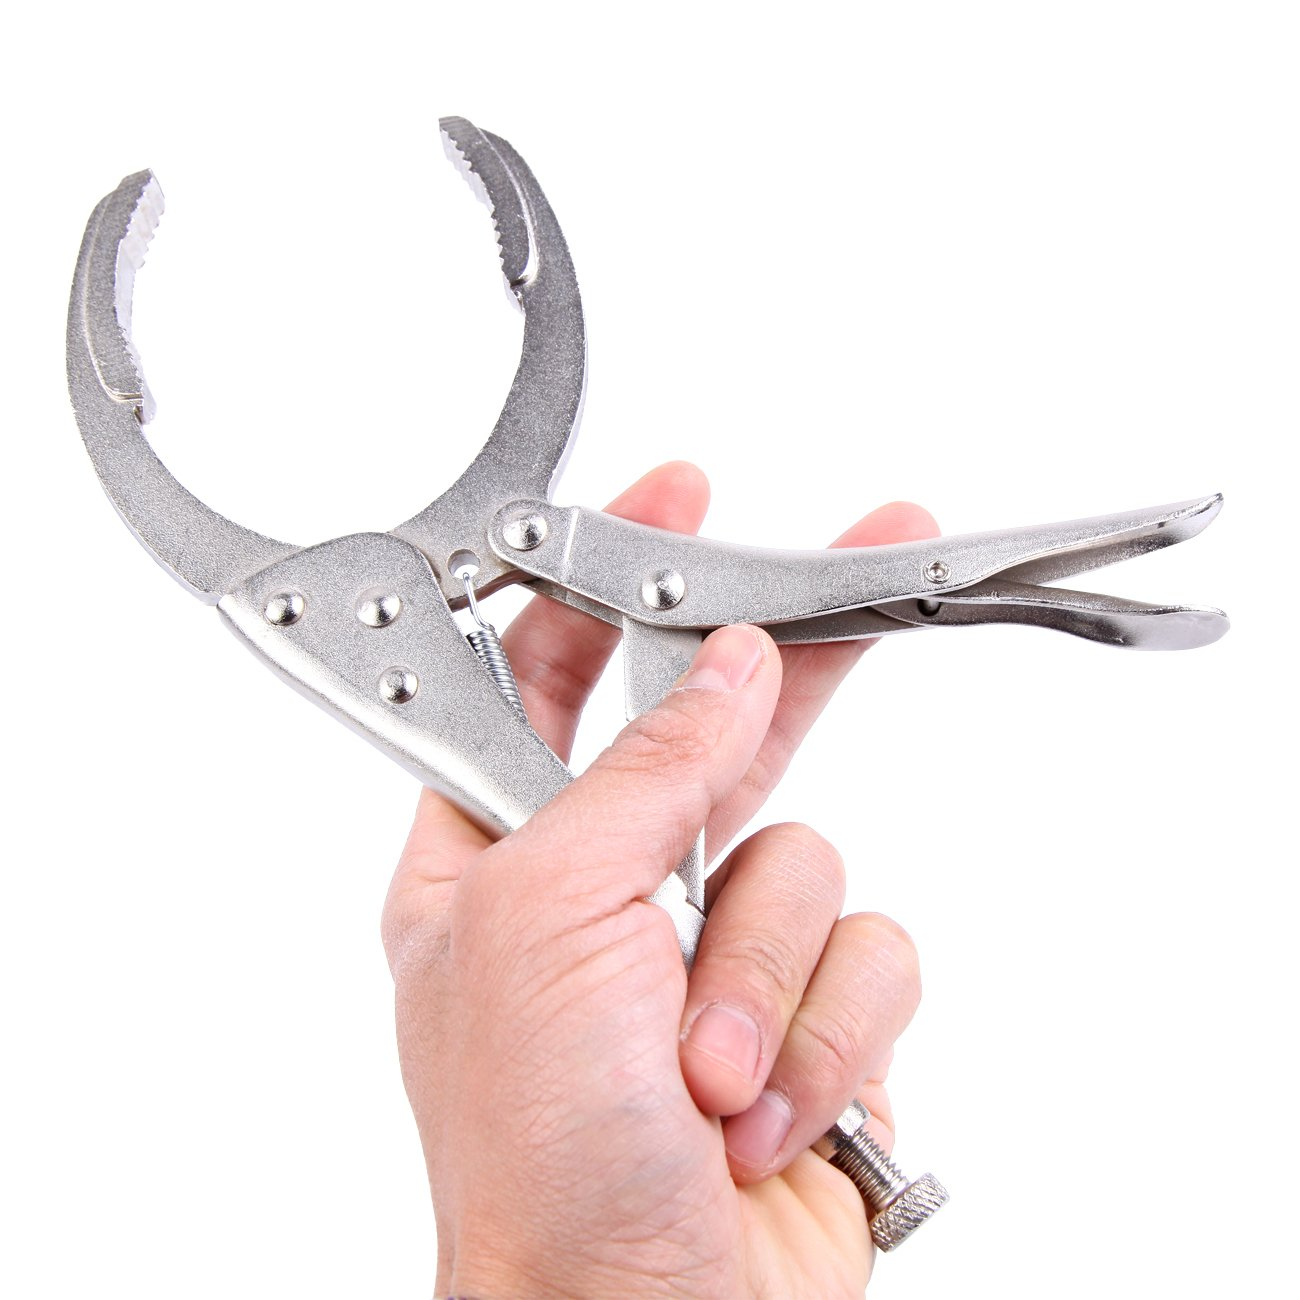 XuanYue Locking Grip Oil Filter Plier Vise Vice Style Filter Wrench plier for Filters or Cylinder Shapes